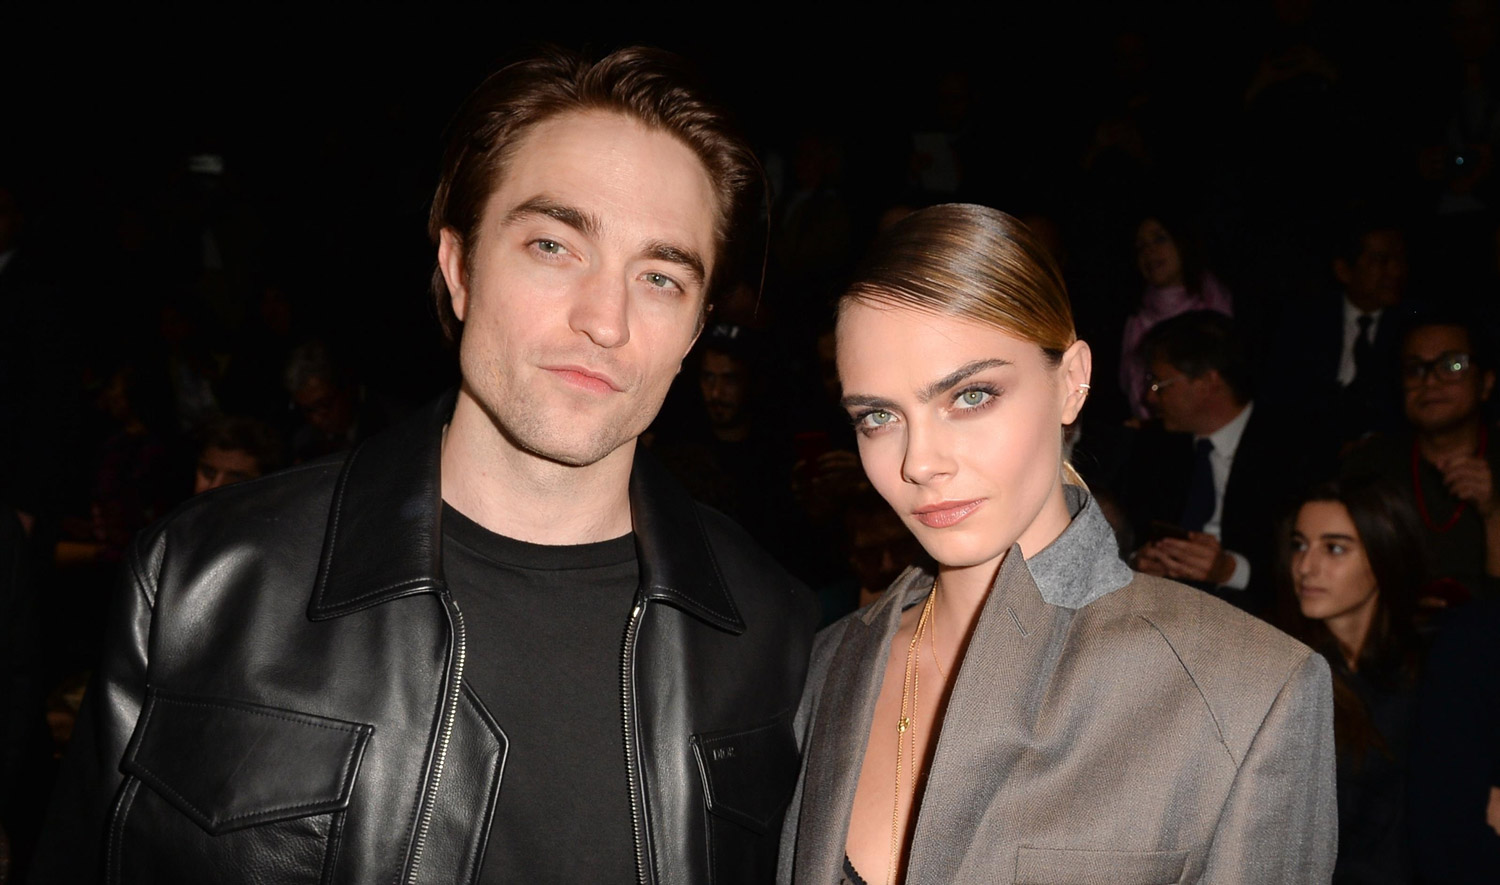 Cara Delevingne Meets Up with Friend Robert Pattinson at Dior Show!